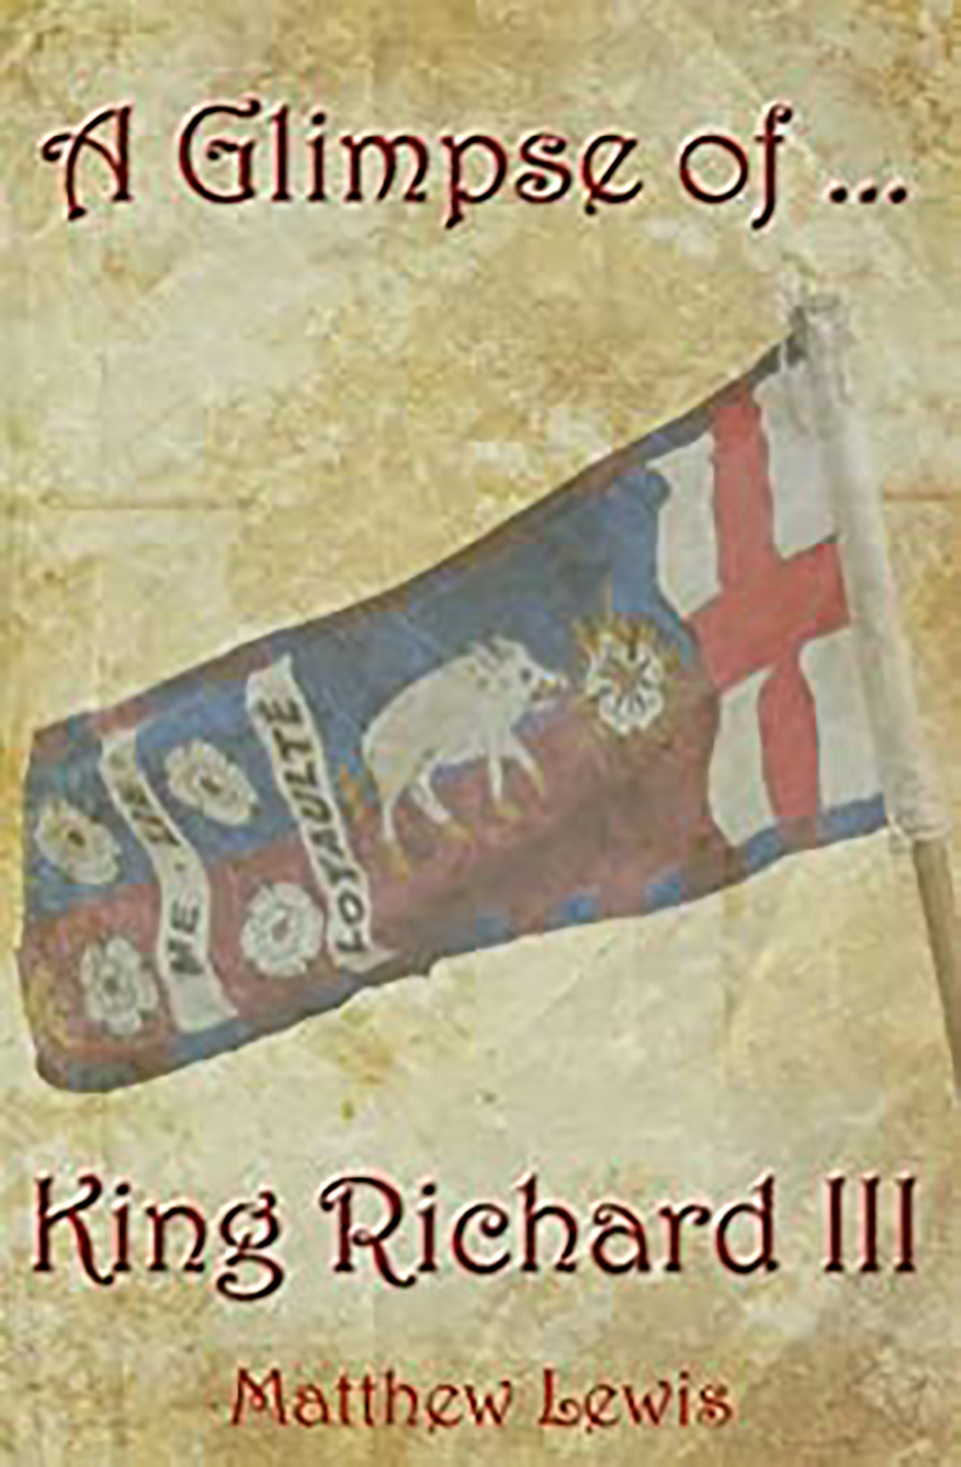 Front cover of a book: A Glimpse of King Richard III by Matthew Lewis